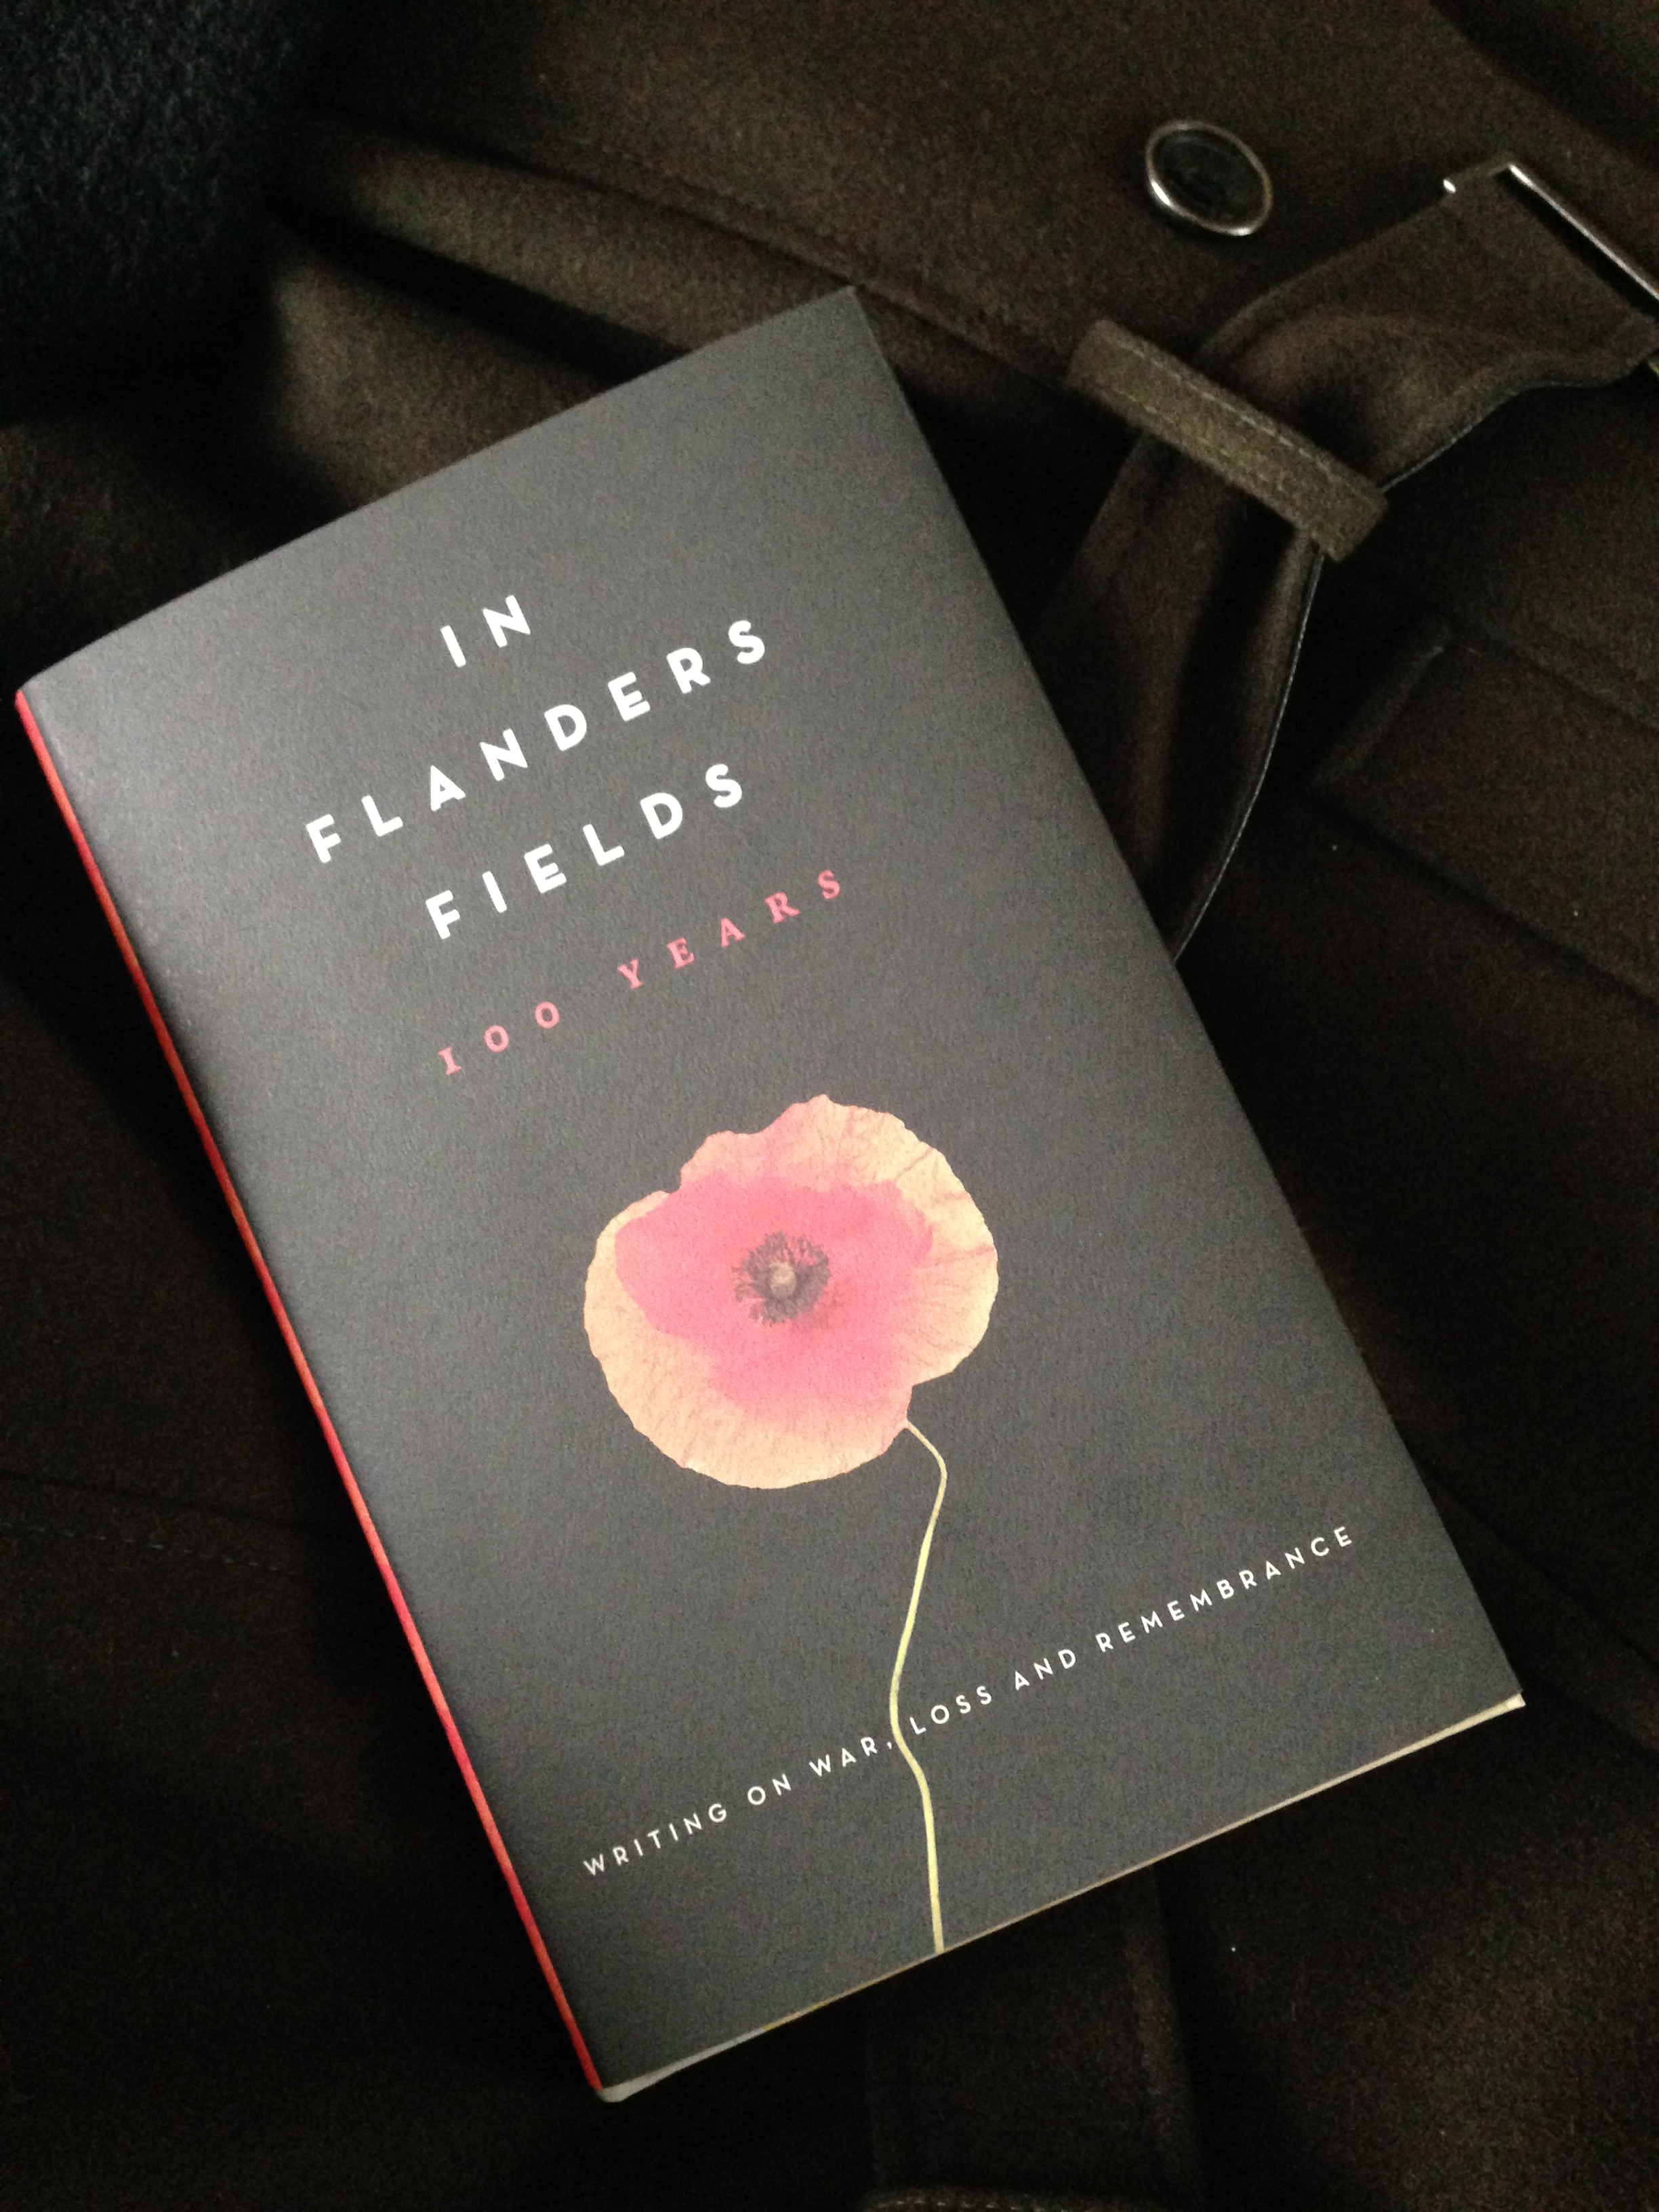 """A collection of essays, photos and illustrations. The most interesting take on """"In Flanders Fields"""" I have ever read.   In Flanders Fields 100 Years - Writing on War, Loss and Remembrance"""